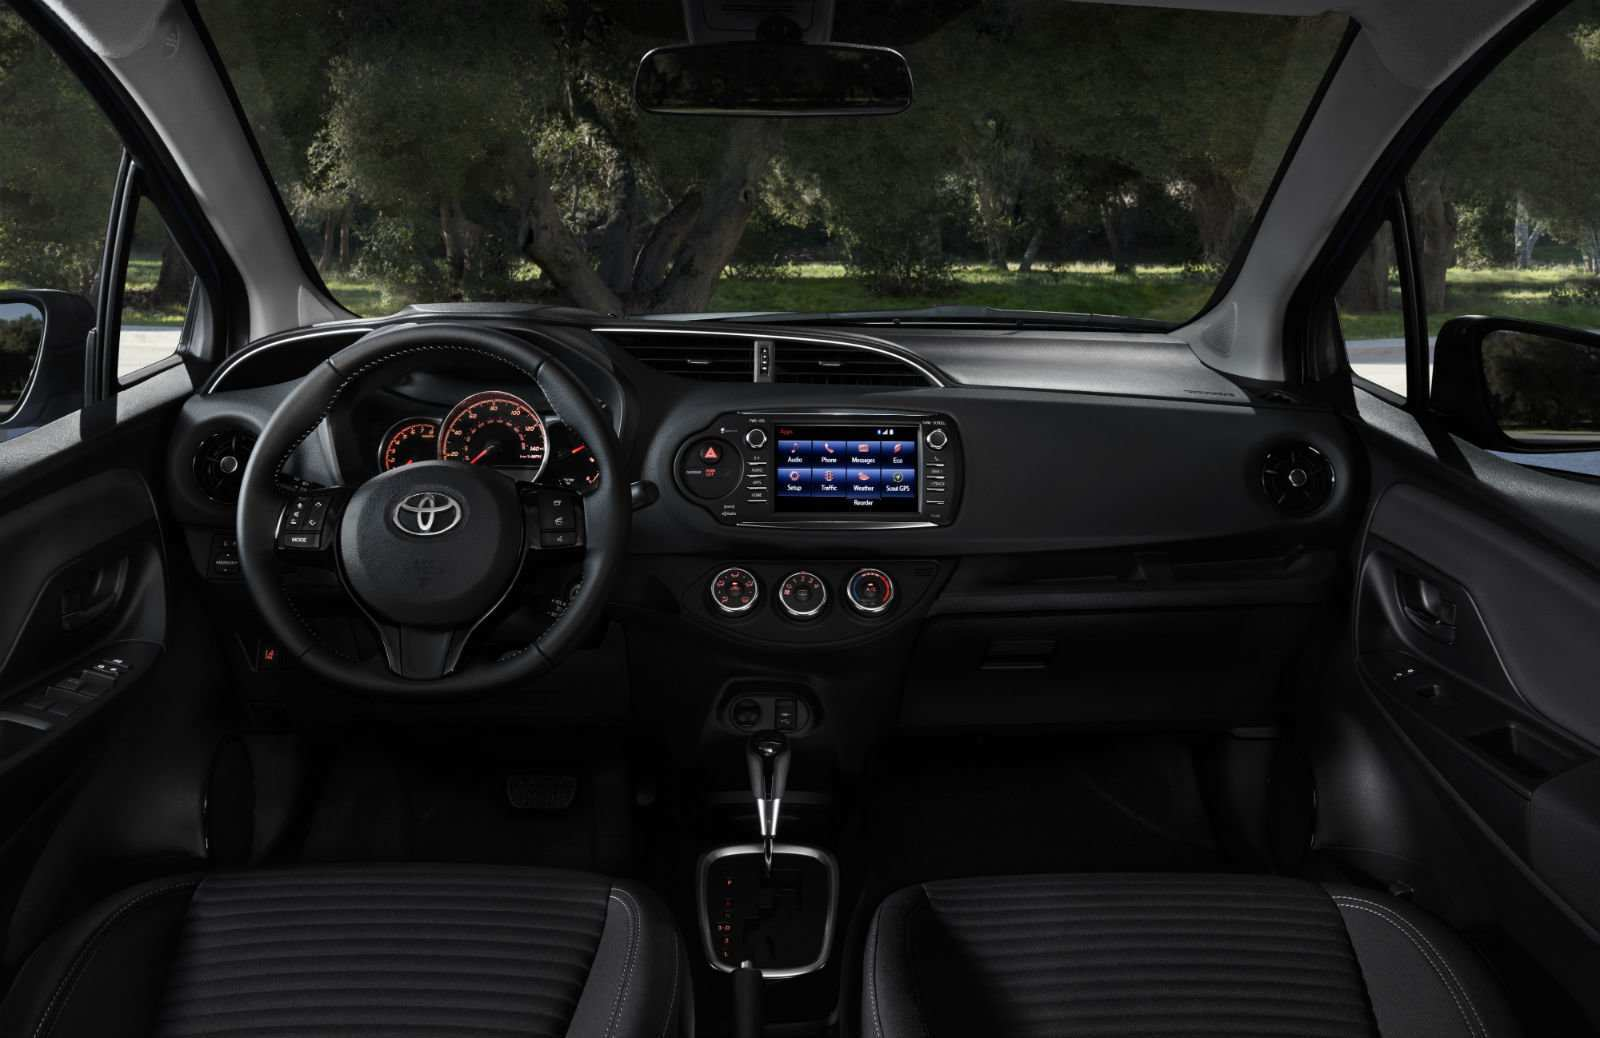 38 All New Toyota Auris 2019 Release Date Price